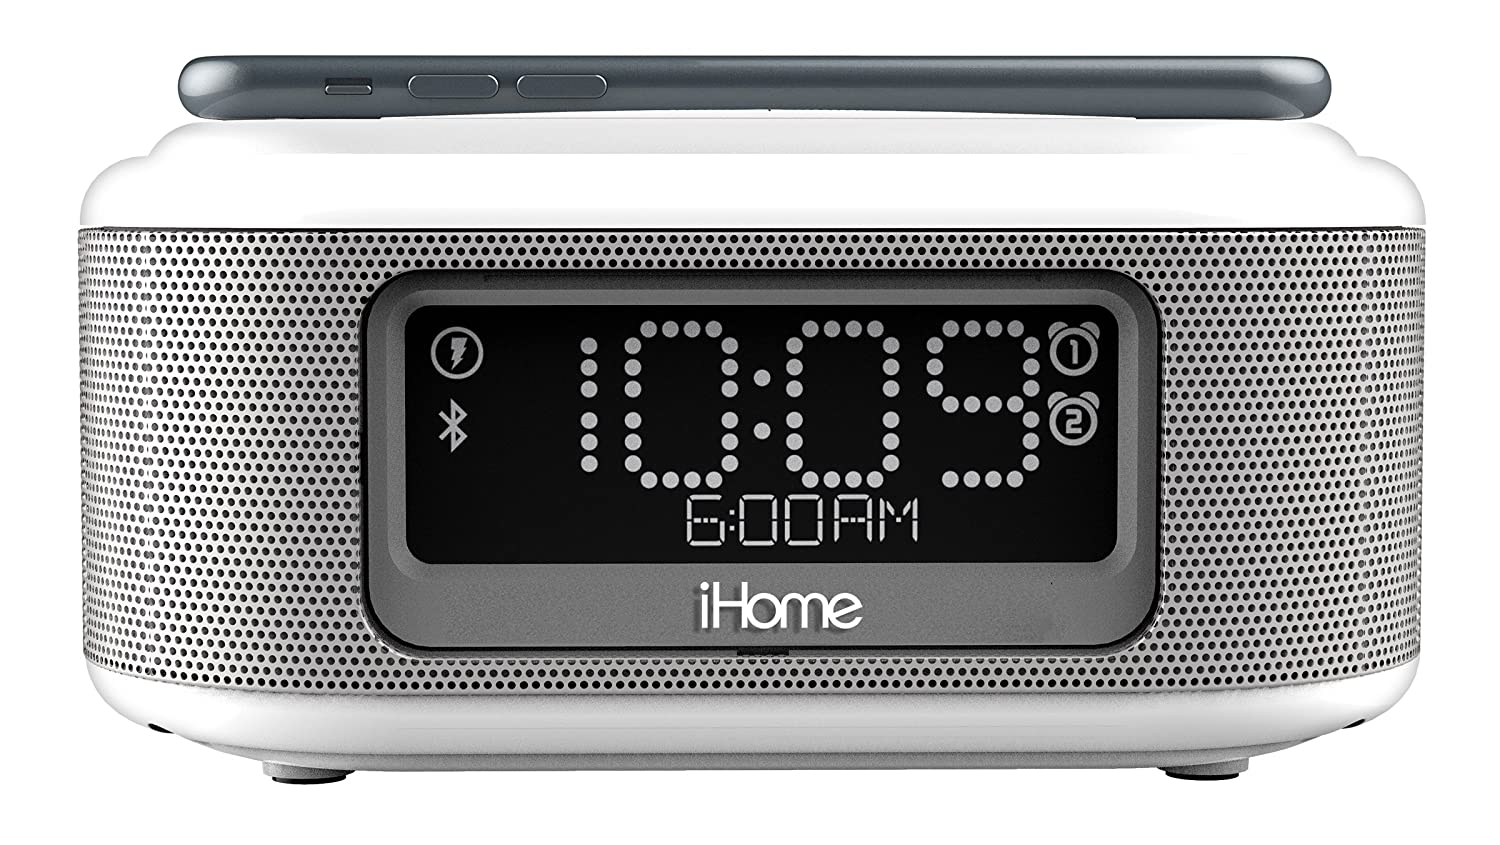 iHome Bluetooth Stereo Dual Alarm Clock with Speaker Phone Wireless Charging and 1 Ampusb Charging Port Radio Alarm Clock, White (iBTW23W)